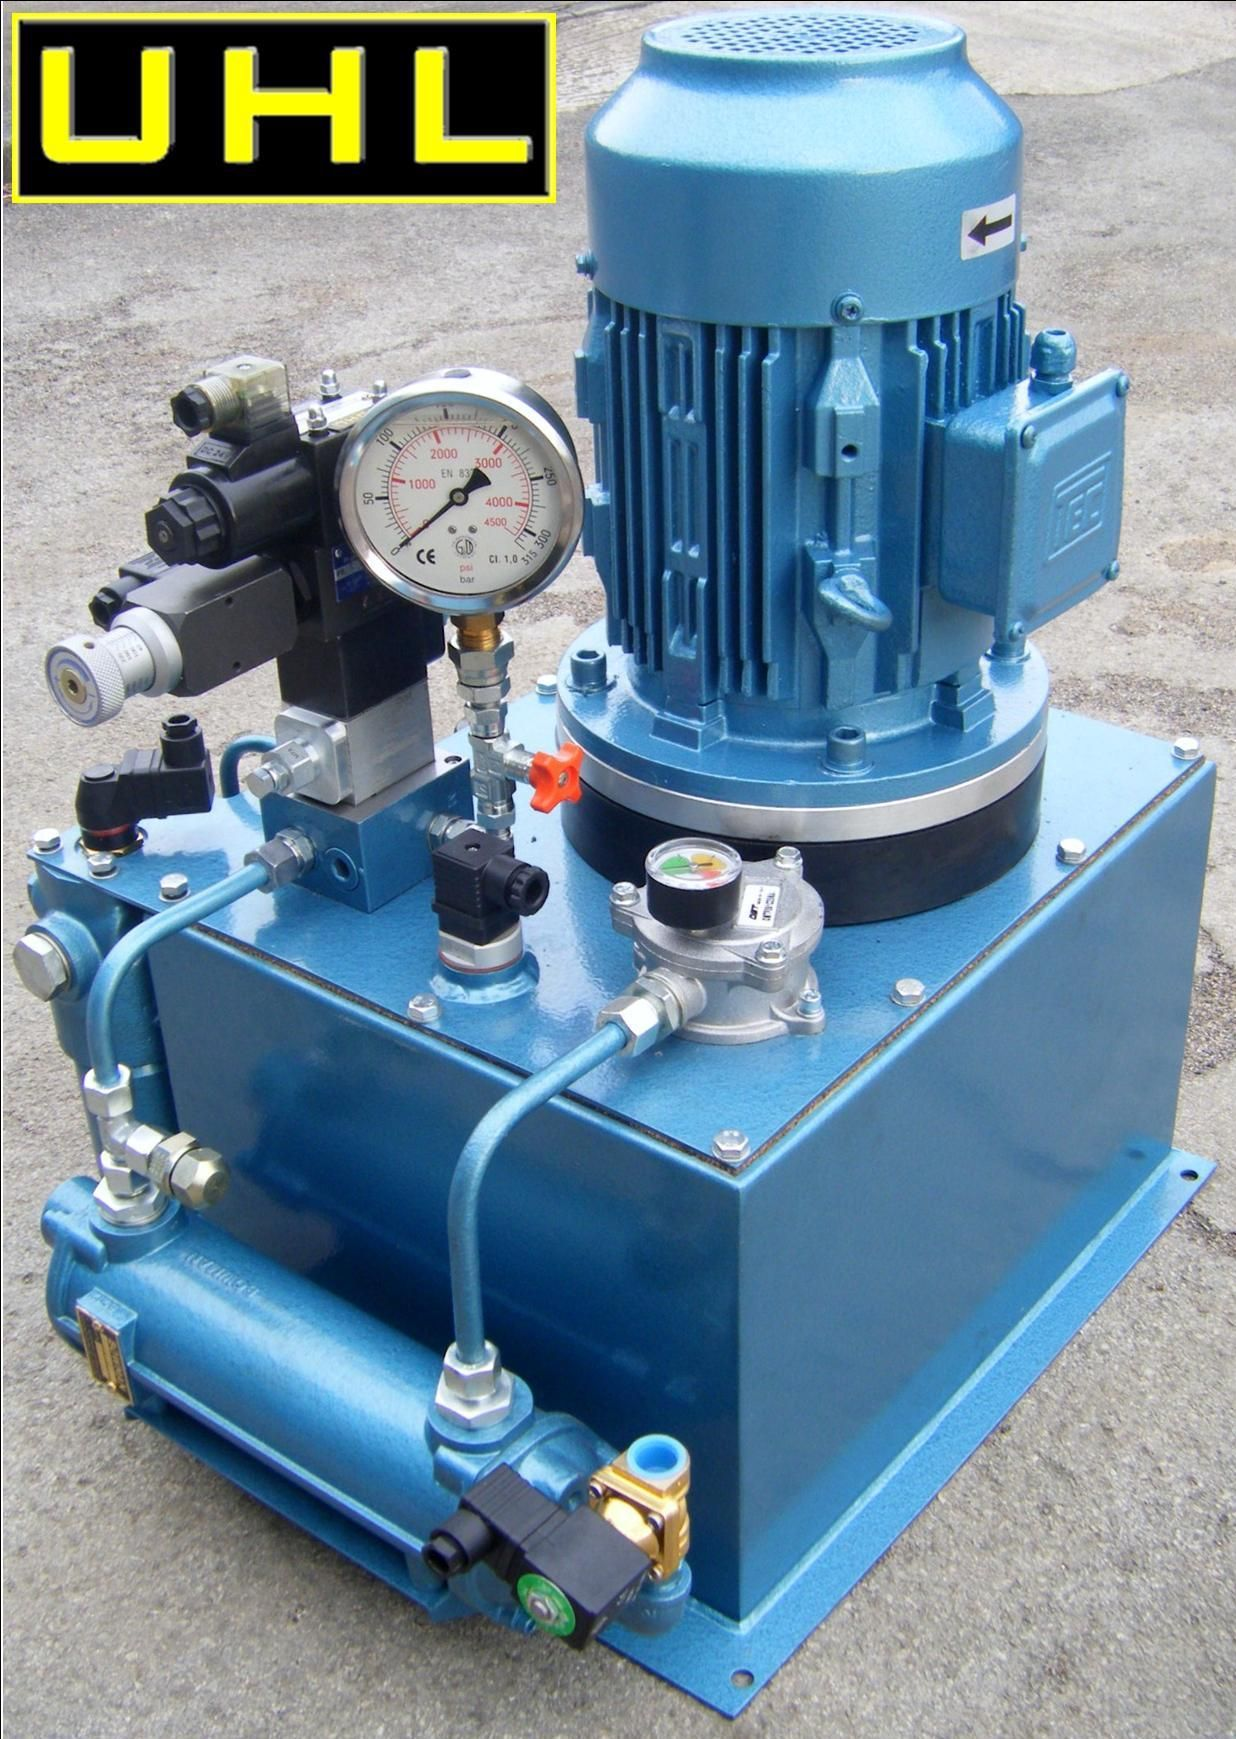 This bespoke built hydraulic power unit features a rewound for Aquaclear motor unit for power filter